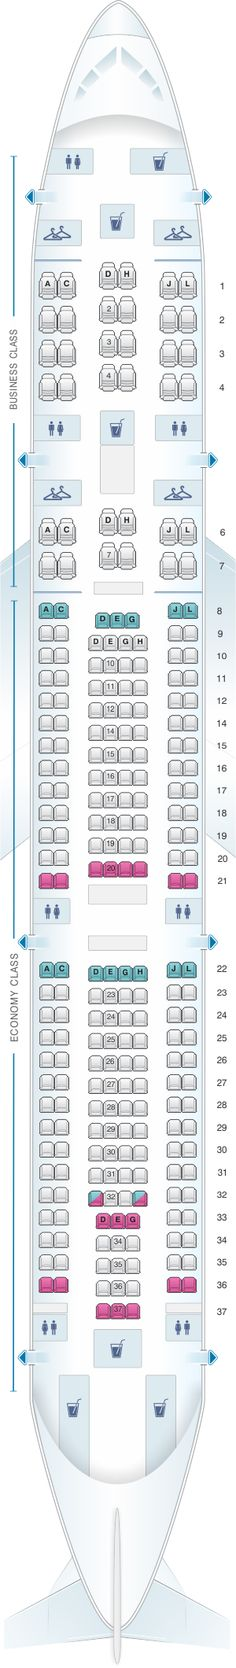 10 Best Iberia Seat Maps images | Map, Airplane seats, China ... China Eastern Airlines Seat Map on etihad airlines seat map, american airlines seat map, china airlines 777-300 economy, china eastern airlines business class, united airlines seat map, china southern airlines seat map, air china seat map, japan airlines seat map, china airlines 777-300er, iberia airlines seat map, copa airlines seat map, shanghai airlines seat map, china airlines seat selection, garuda airlines seat map, lan airlines seat map, south african airlines seat map, ethiopian airlines seat map, croatia airlines seat map, china eastern airlines route map, china eastern airlines seat assignment,